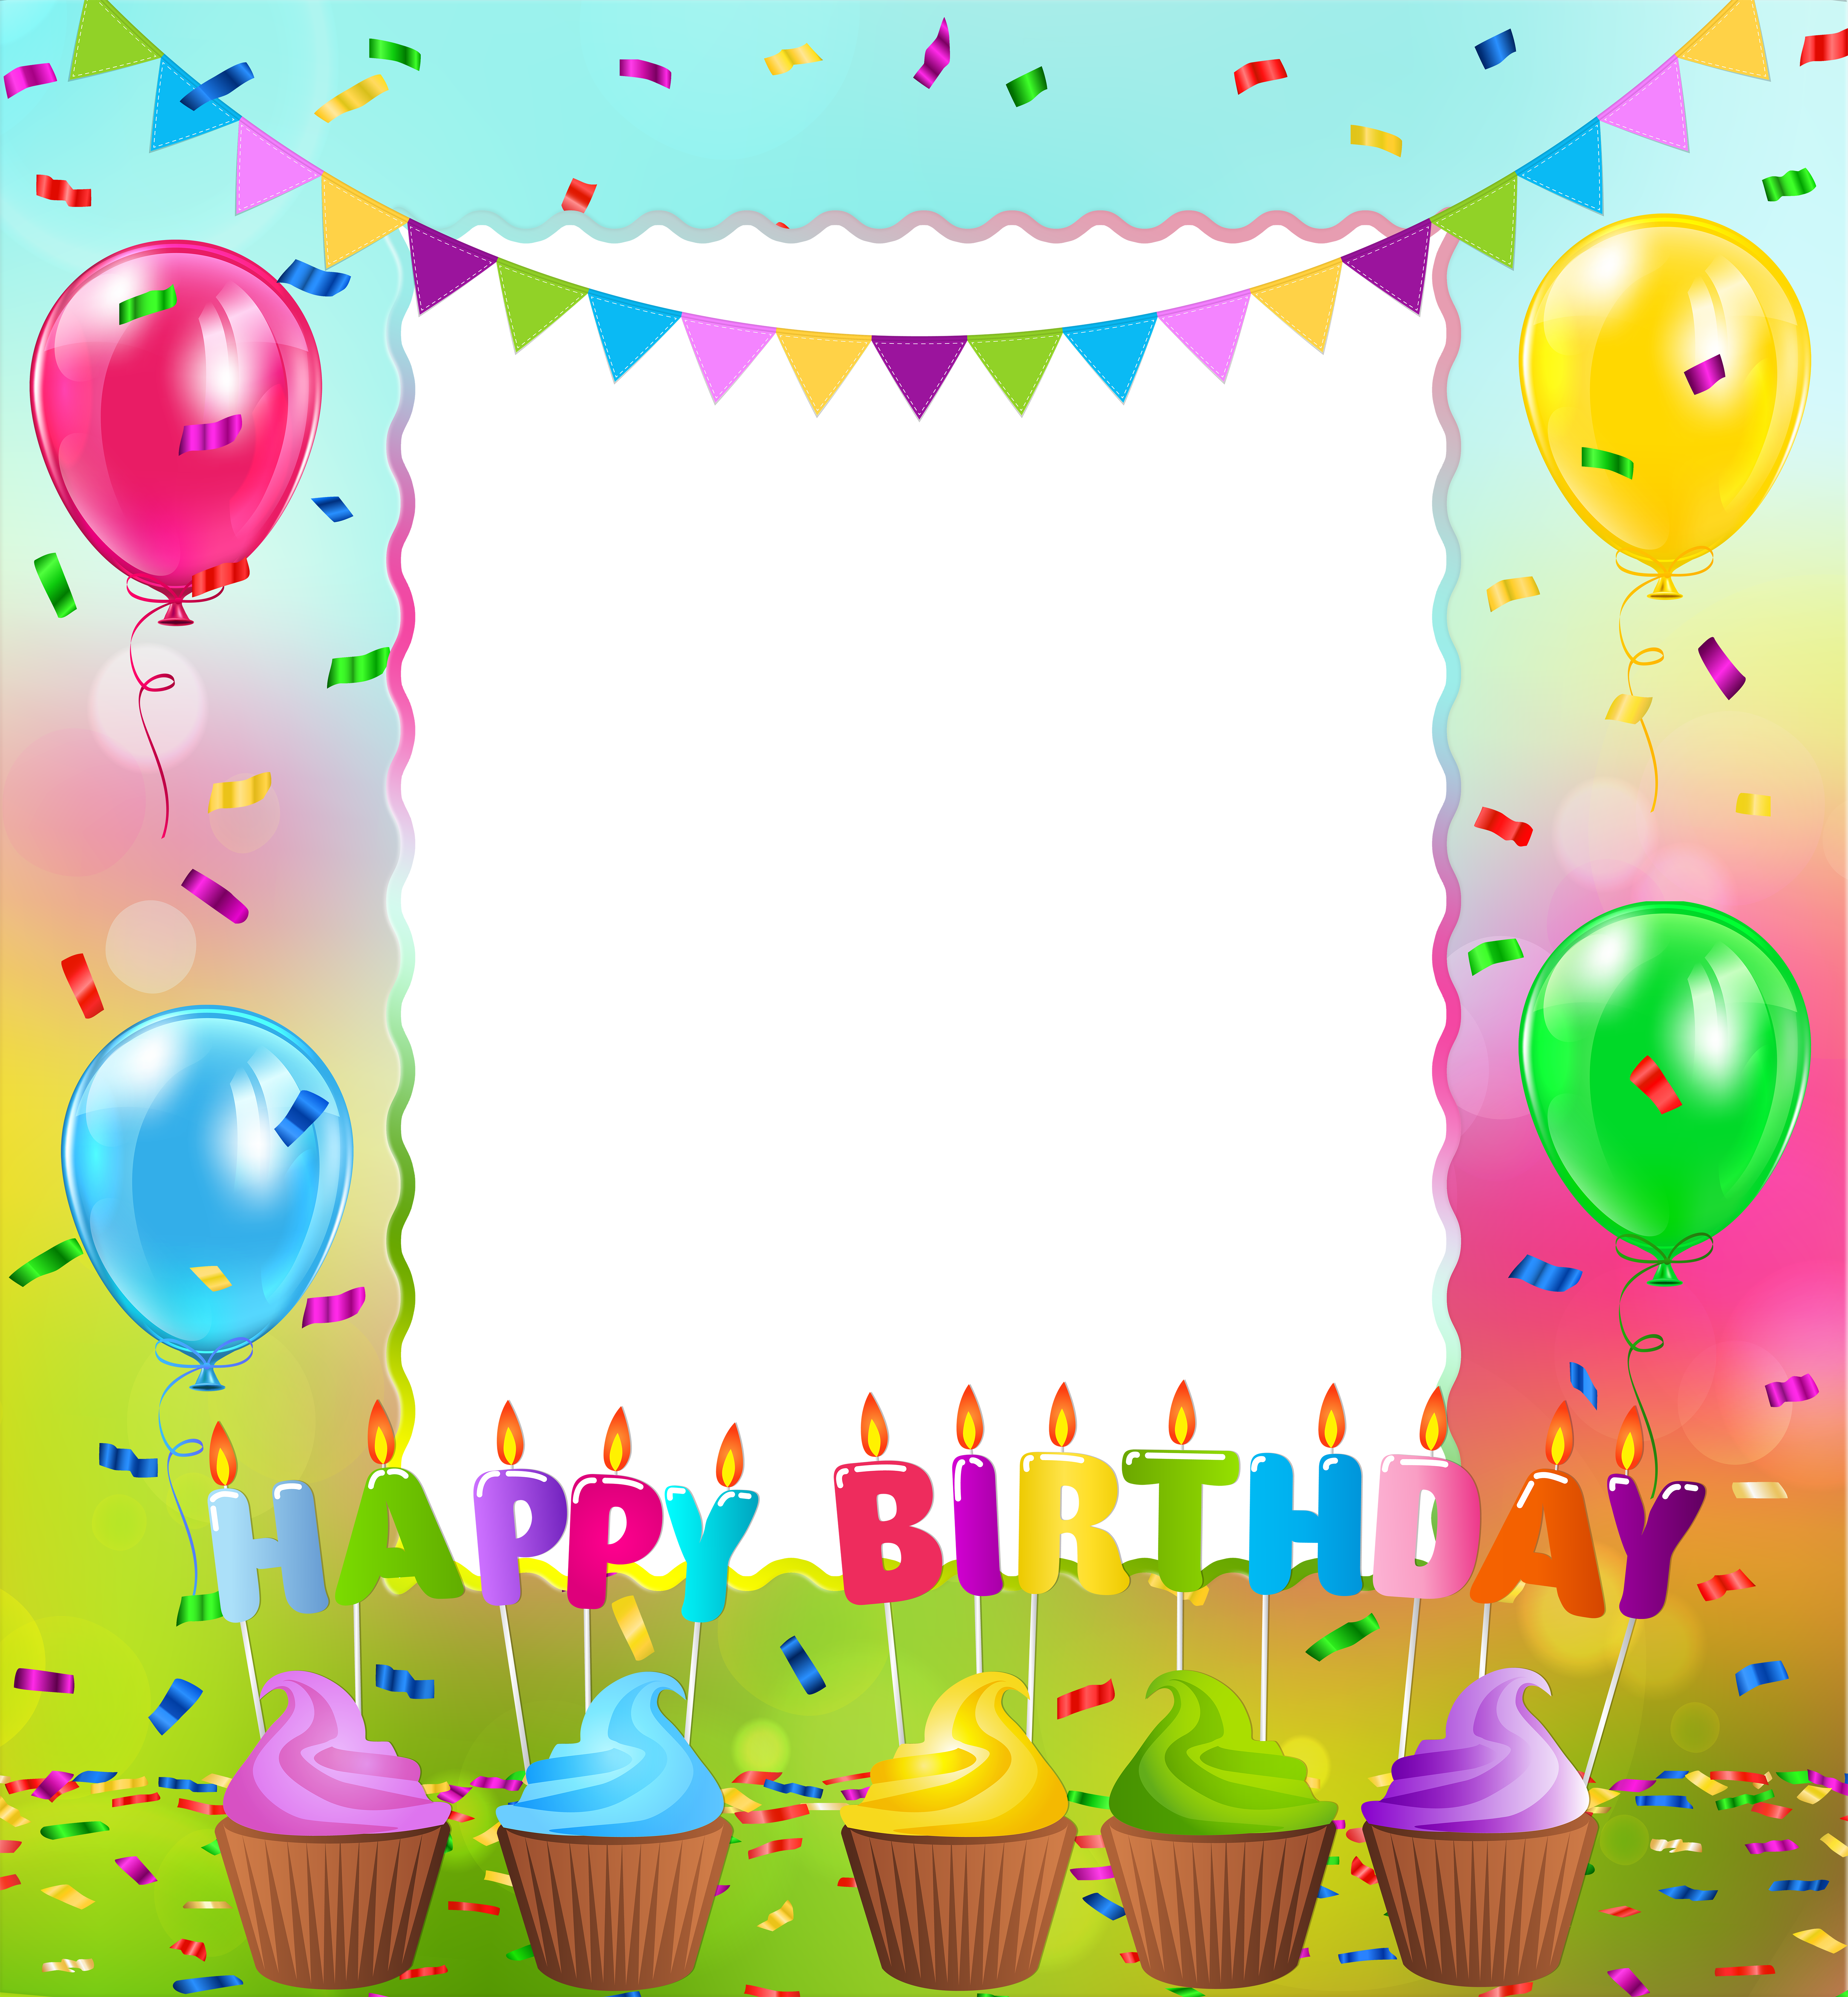 Happy birthday clipart frame image freeuse Happy Birthday PNG Frame | Gallery Yopriceville - High-Quality ... image freeuse